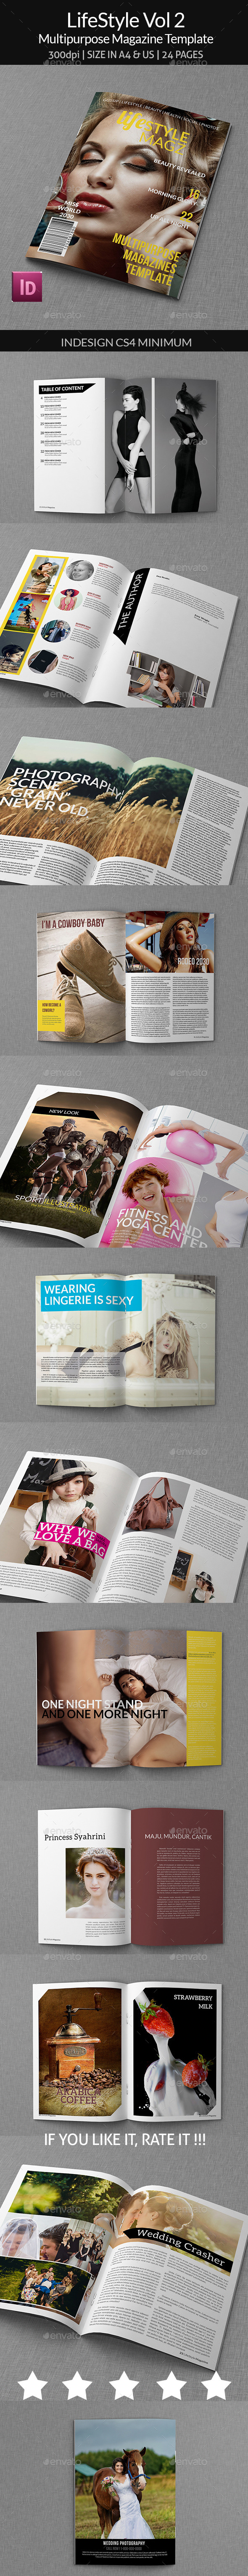 GraphicRiver Lifestyle Vol 2 Multipurpose Magazines 9562502